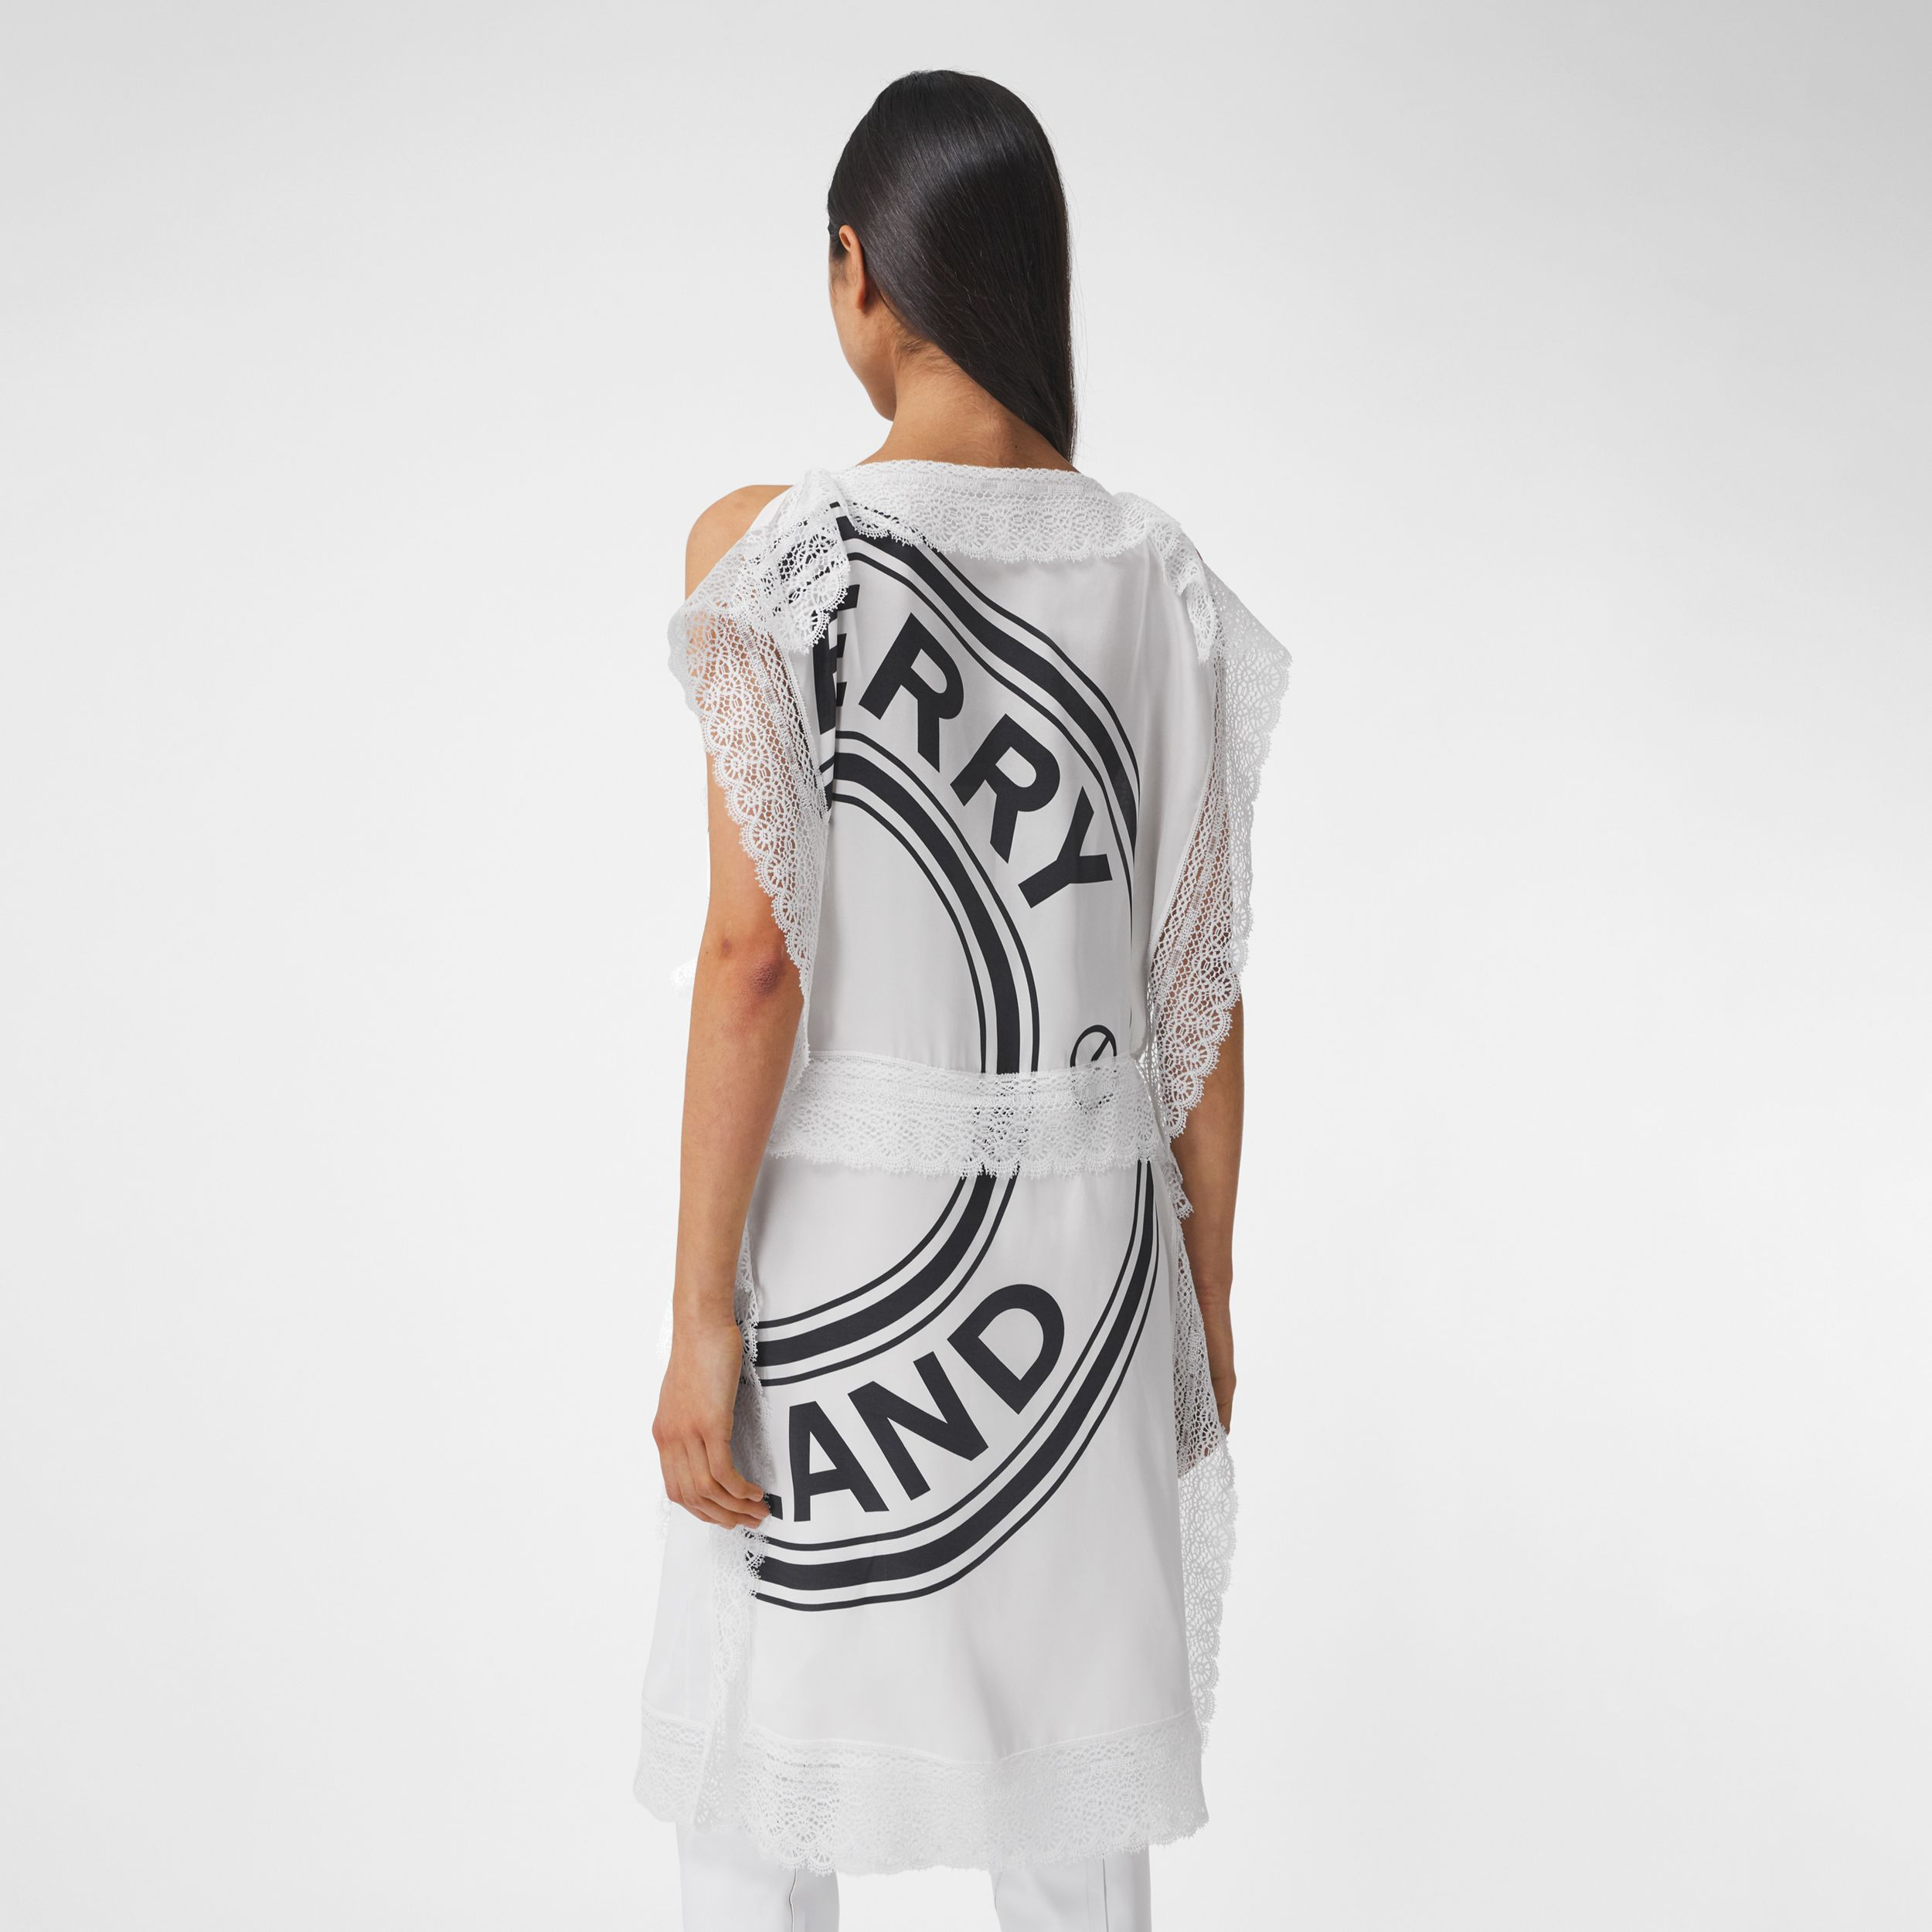 Lace Detail Logo Graphic Silk Dress in White/black - Women | Burberry United Kingdom - 3